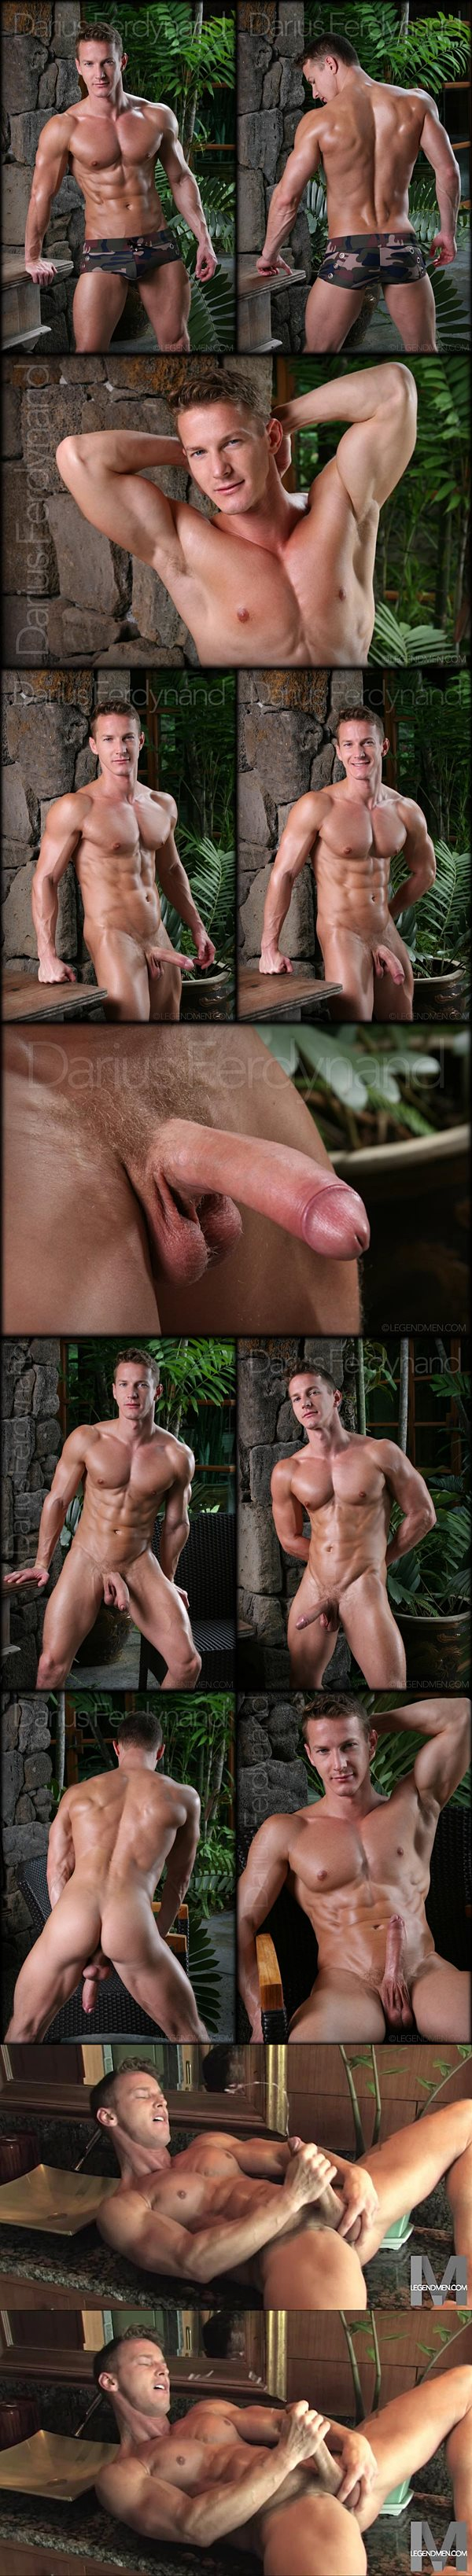 Handsome muscle jock Darius Ferdynand has an intense orgasm at Legendmen